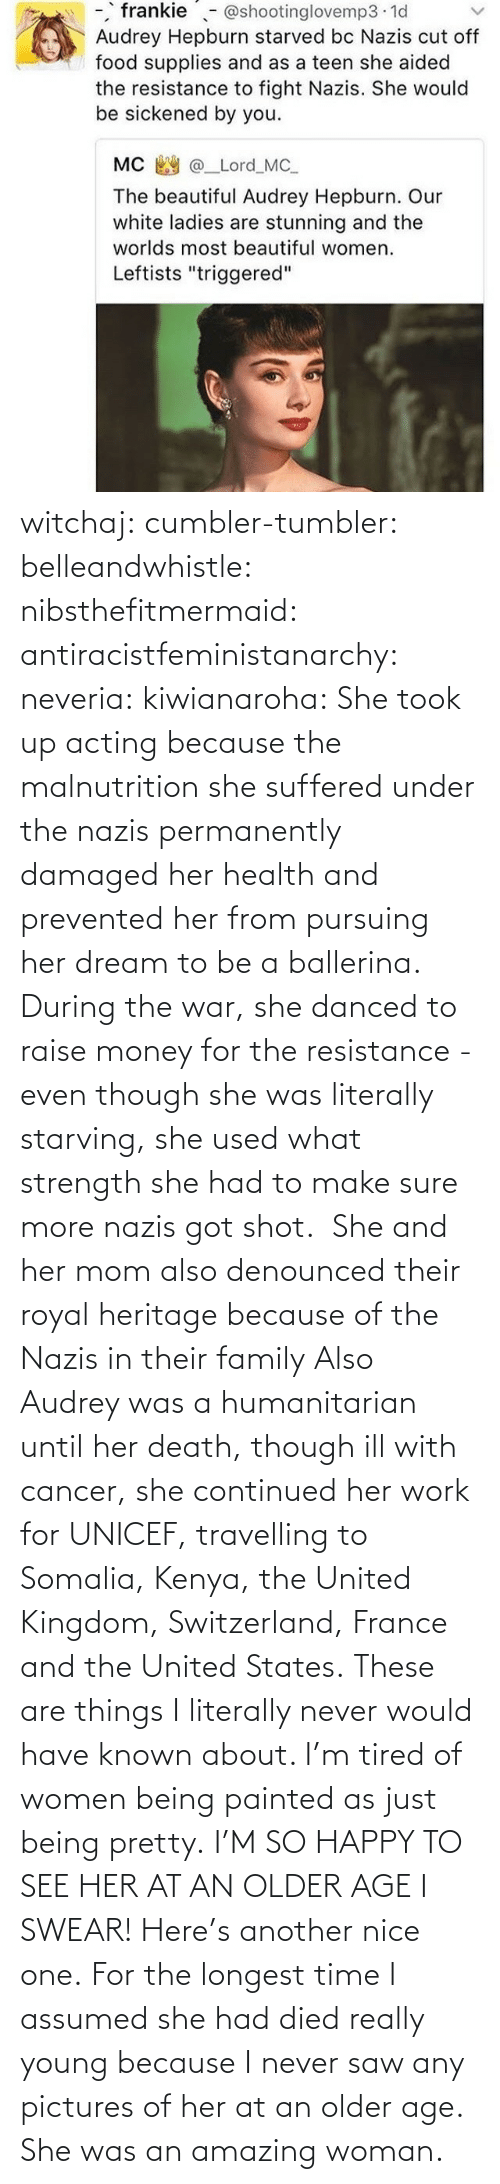 I Never: witchaj: cumbler-tumbler:  belleandwhistle:  nibsthefitmermaid:  antiracistfeministanarchy:  neveria:  kiwianaroha: She took up acting because the malnutrition she suffered under the nazis permanently damaged her health and prevented her from pursuing her dream to be a ballerina. During the war, she danced to raise money for the resistance - even though she was literally starving, she used what strength she had to make sure more nazis got shot.  She and her mom also denounced their royal heritage because of the Nazis in their family  Also Audrey was a humanitarian until her death, though ill with cancer, she continued her work for UNICEF, travelling to Somalia, Kenya, the United Kingdom, Switzerland, France and the United States.  These are things I literally never would have known about. I'm tired of women being painted as just being pretty.  I'M SO HAPPY TO SEE HER AT AN OLDER AGE I SWEAR!  Here's another nice one.   For the longest time I assumed she had died really young because I never saw any pictures of her at an older age.  She was an amazing woman.